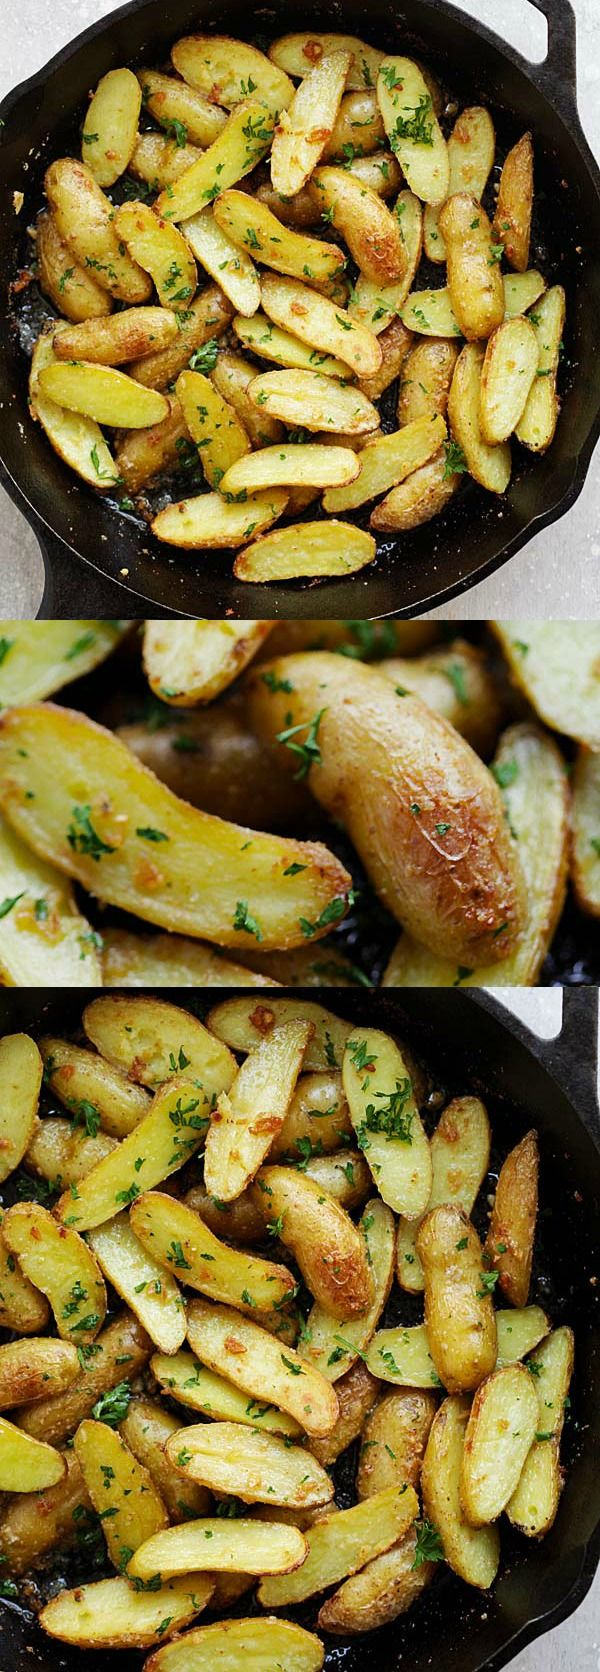 Garlic Butter Roasted Fingerling Potatoes – easiest and best roasted potatoes ever with only 5 ingredients and takes 30 mins from prep to dinner table. So good   rasamalaysia.com